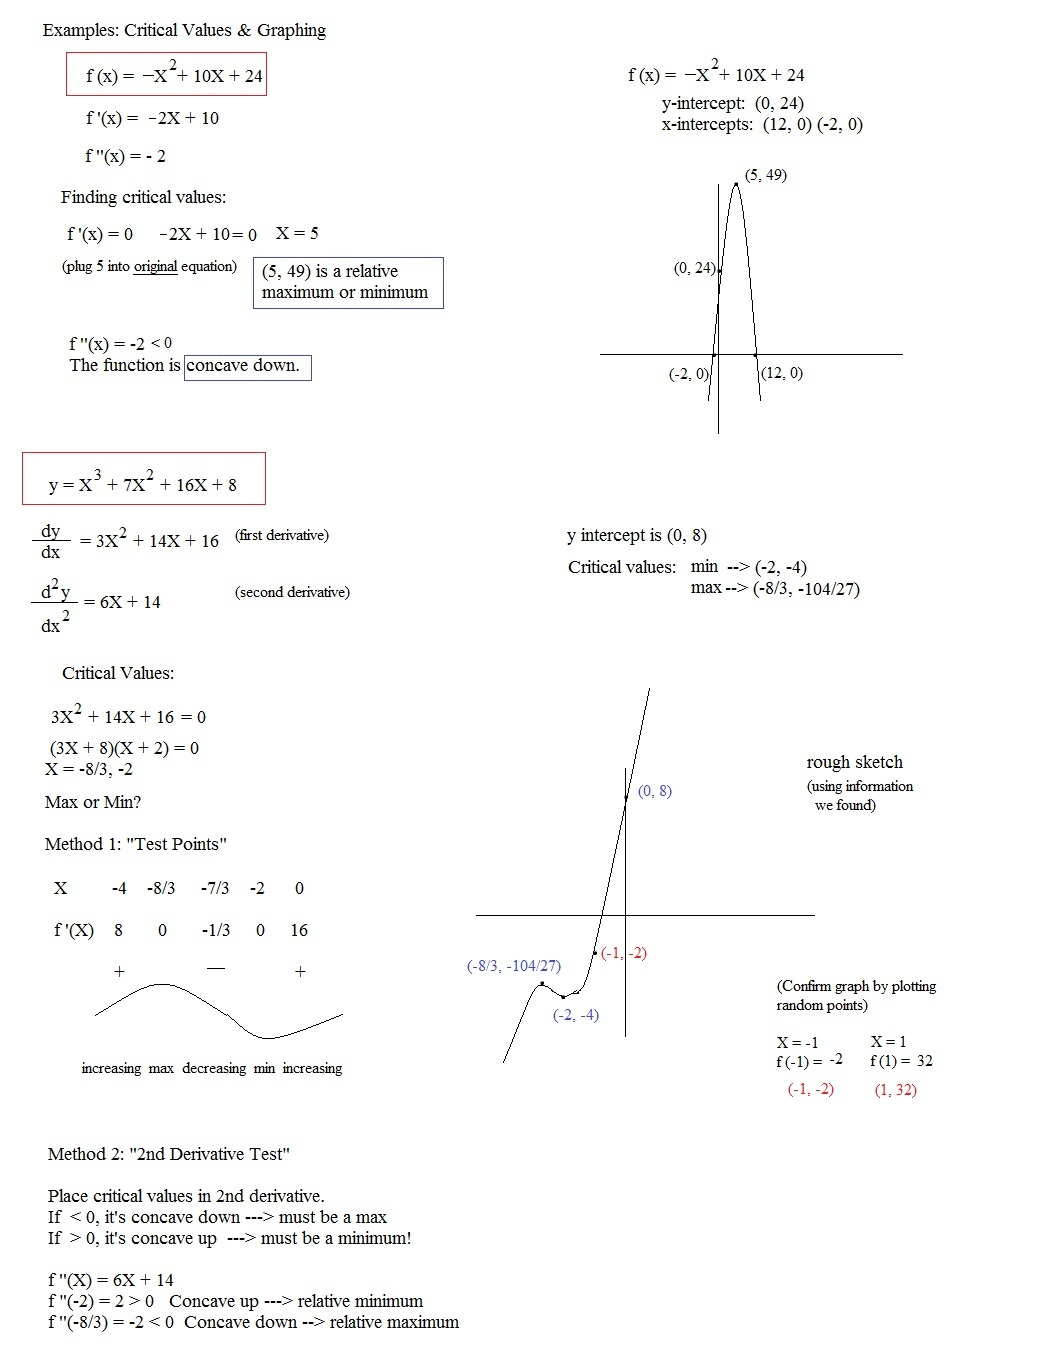 Math Plane - Introduction to Derivatives: Rules, Notes